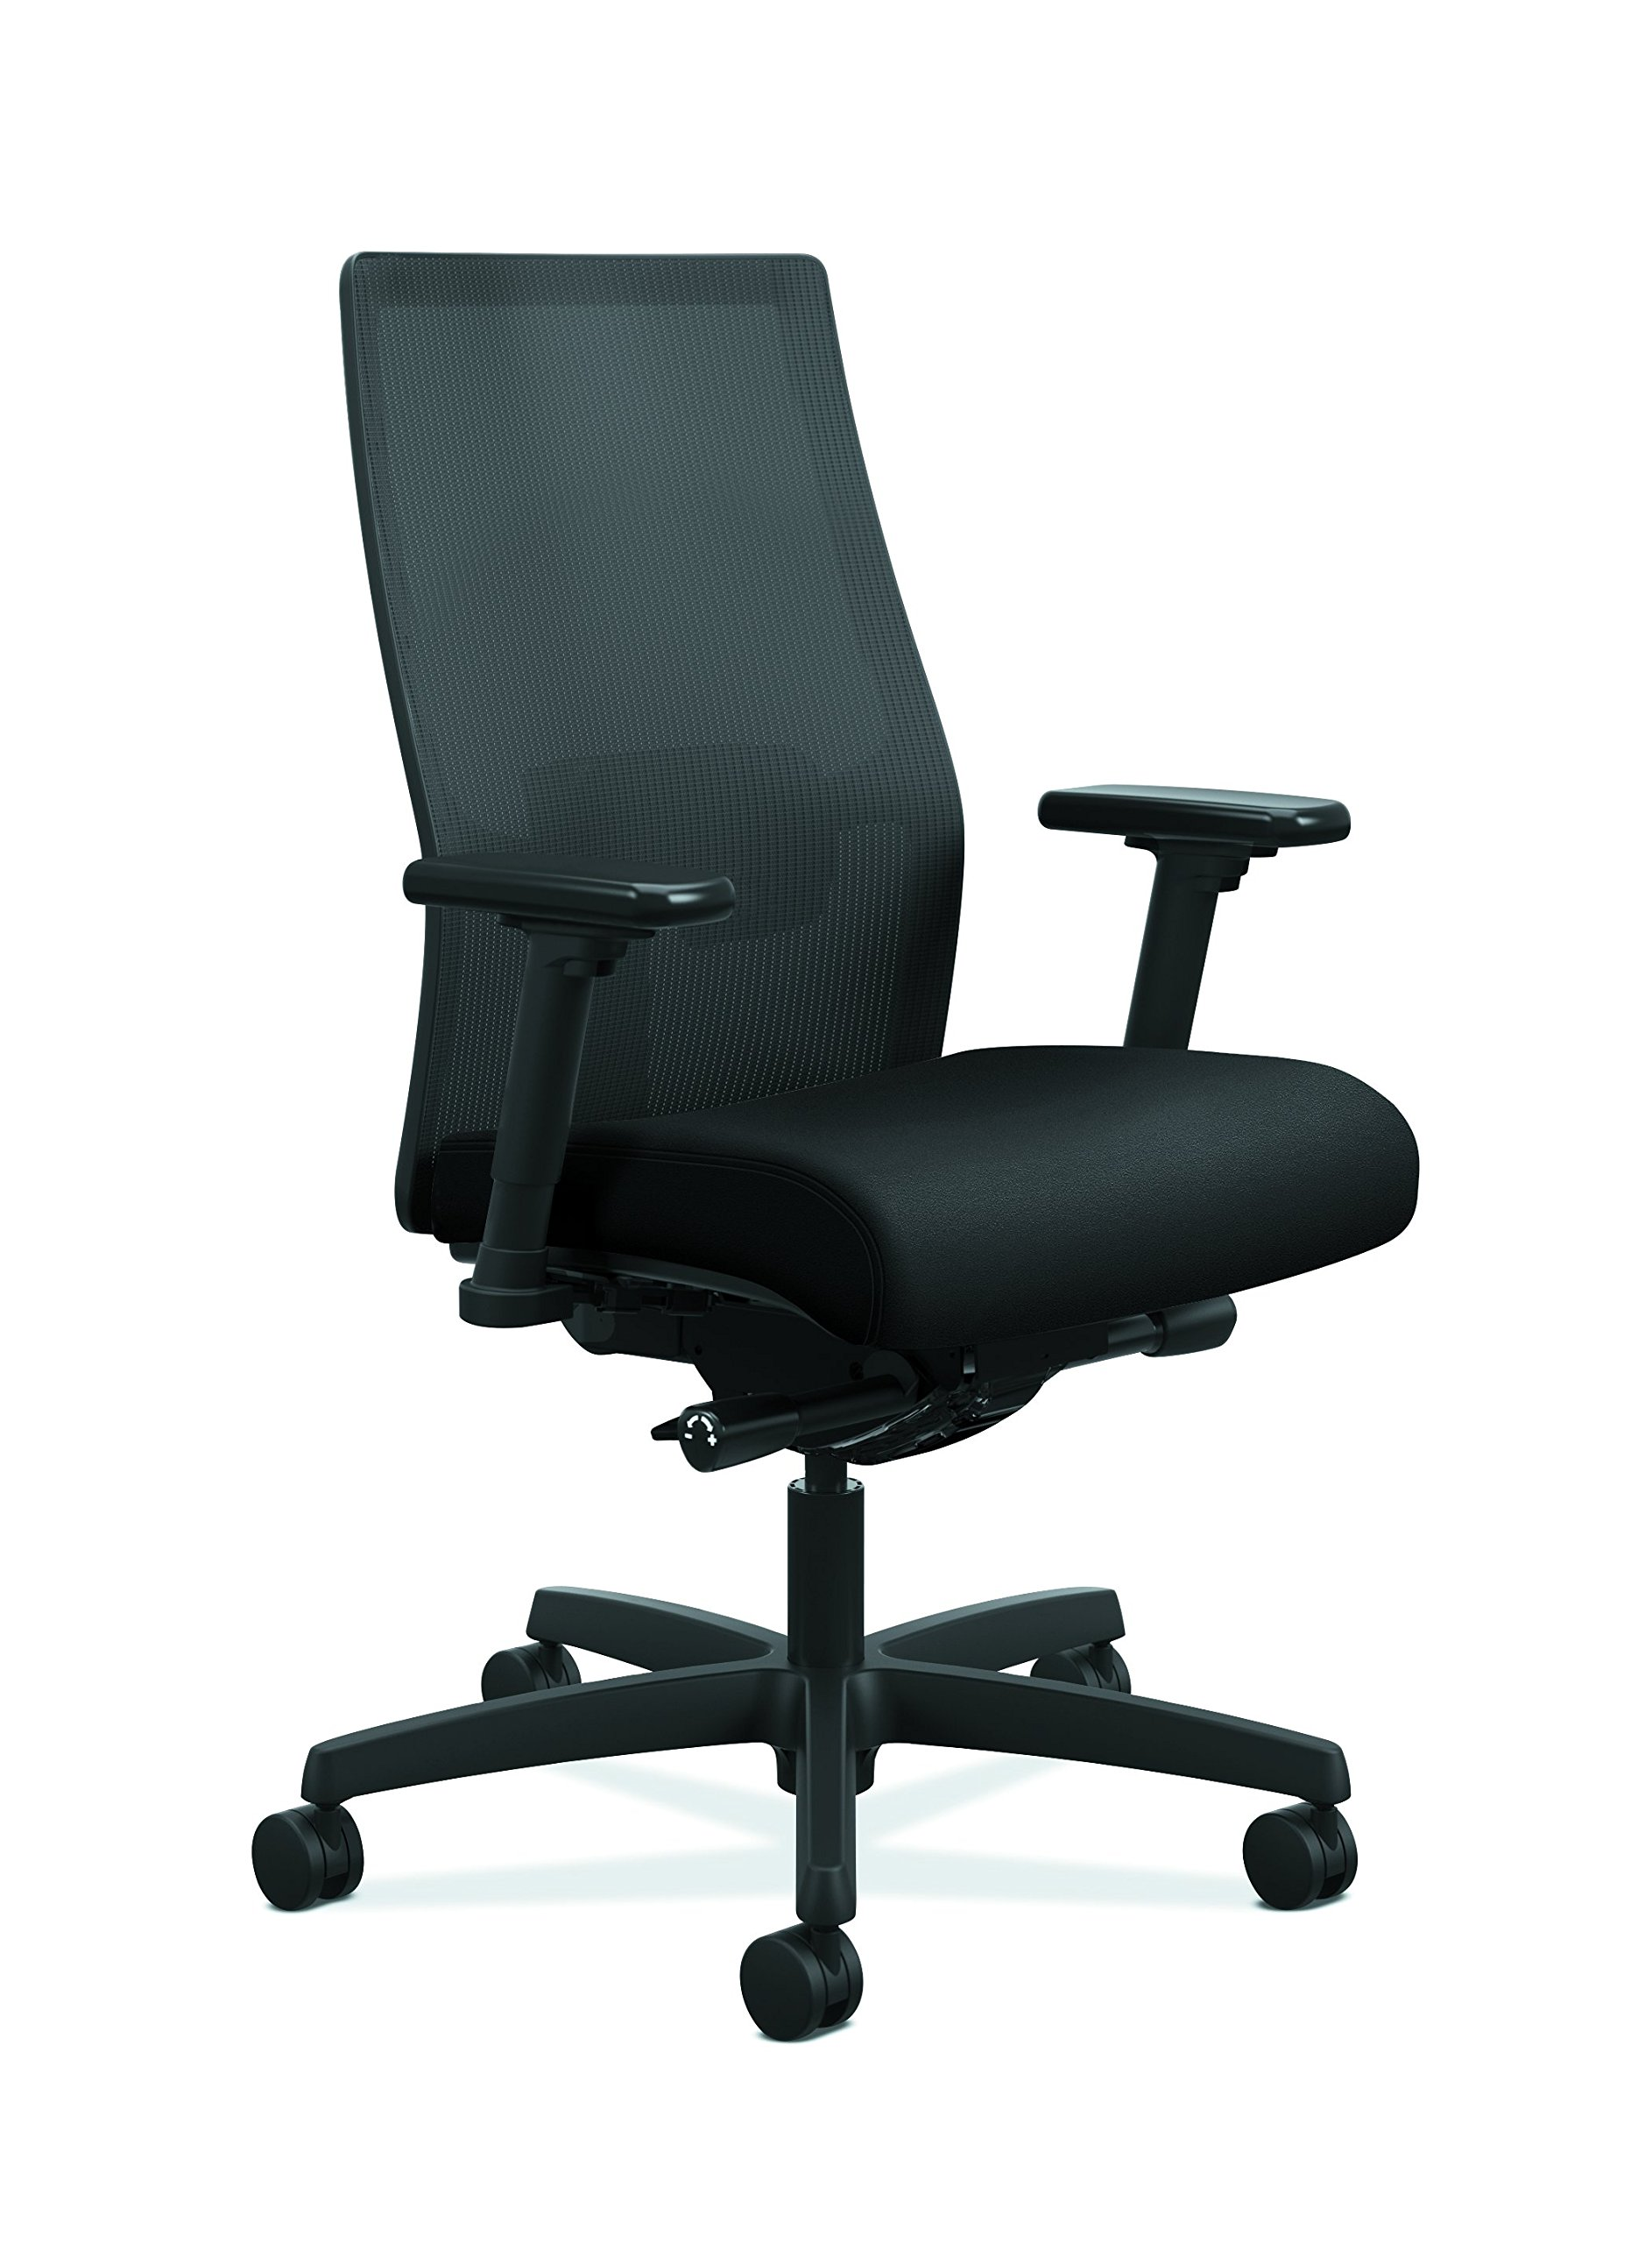 HON Ignition 2.0 Mid-Back Adjustable Lumbar Work Chair - Black Mesh Computer Chair for Office Desk, Black Fabric (HONI2M2AMLC10TK) by HON